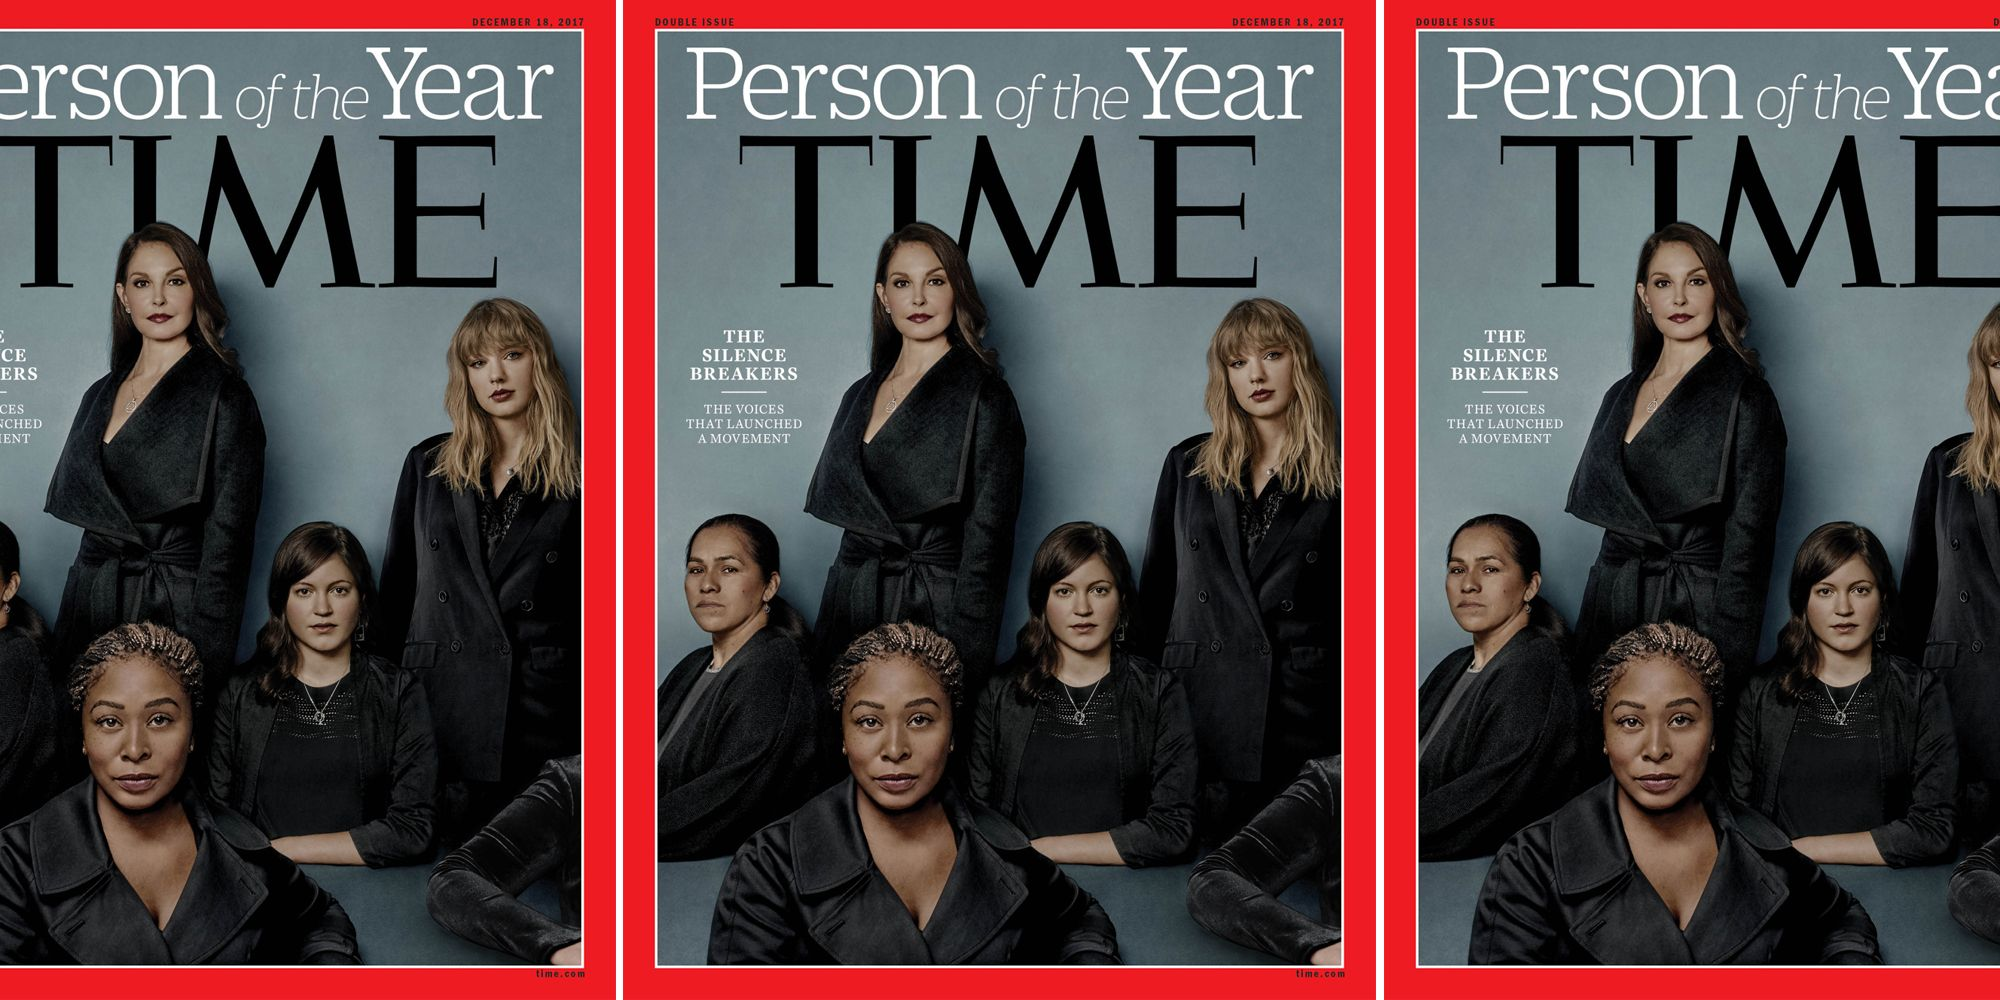 The Most Powerful Statements from TIME's Person of the Year, The Silence Breakers